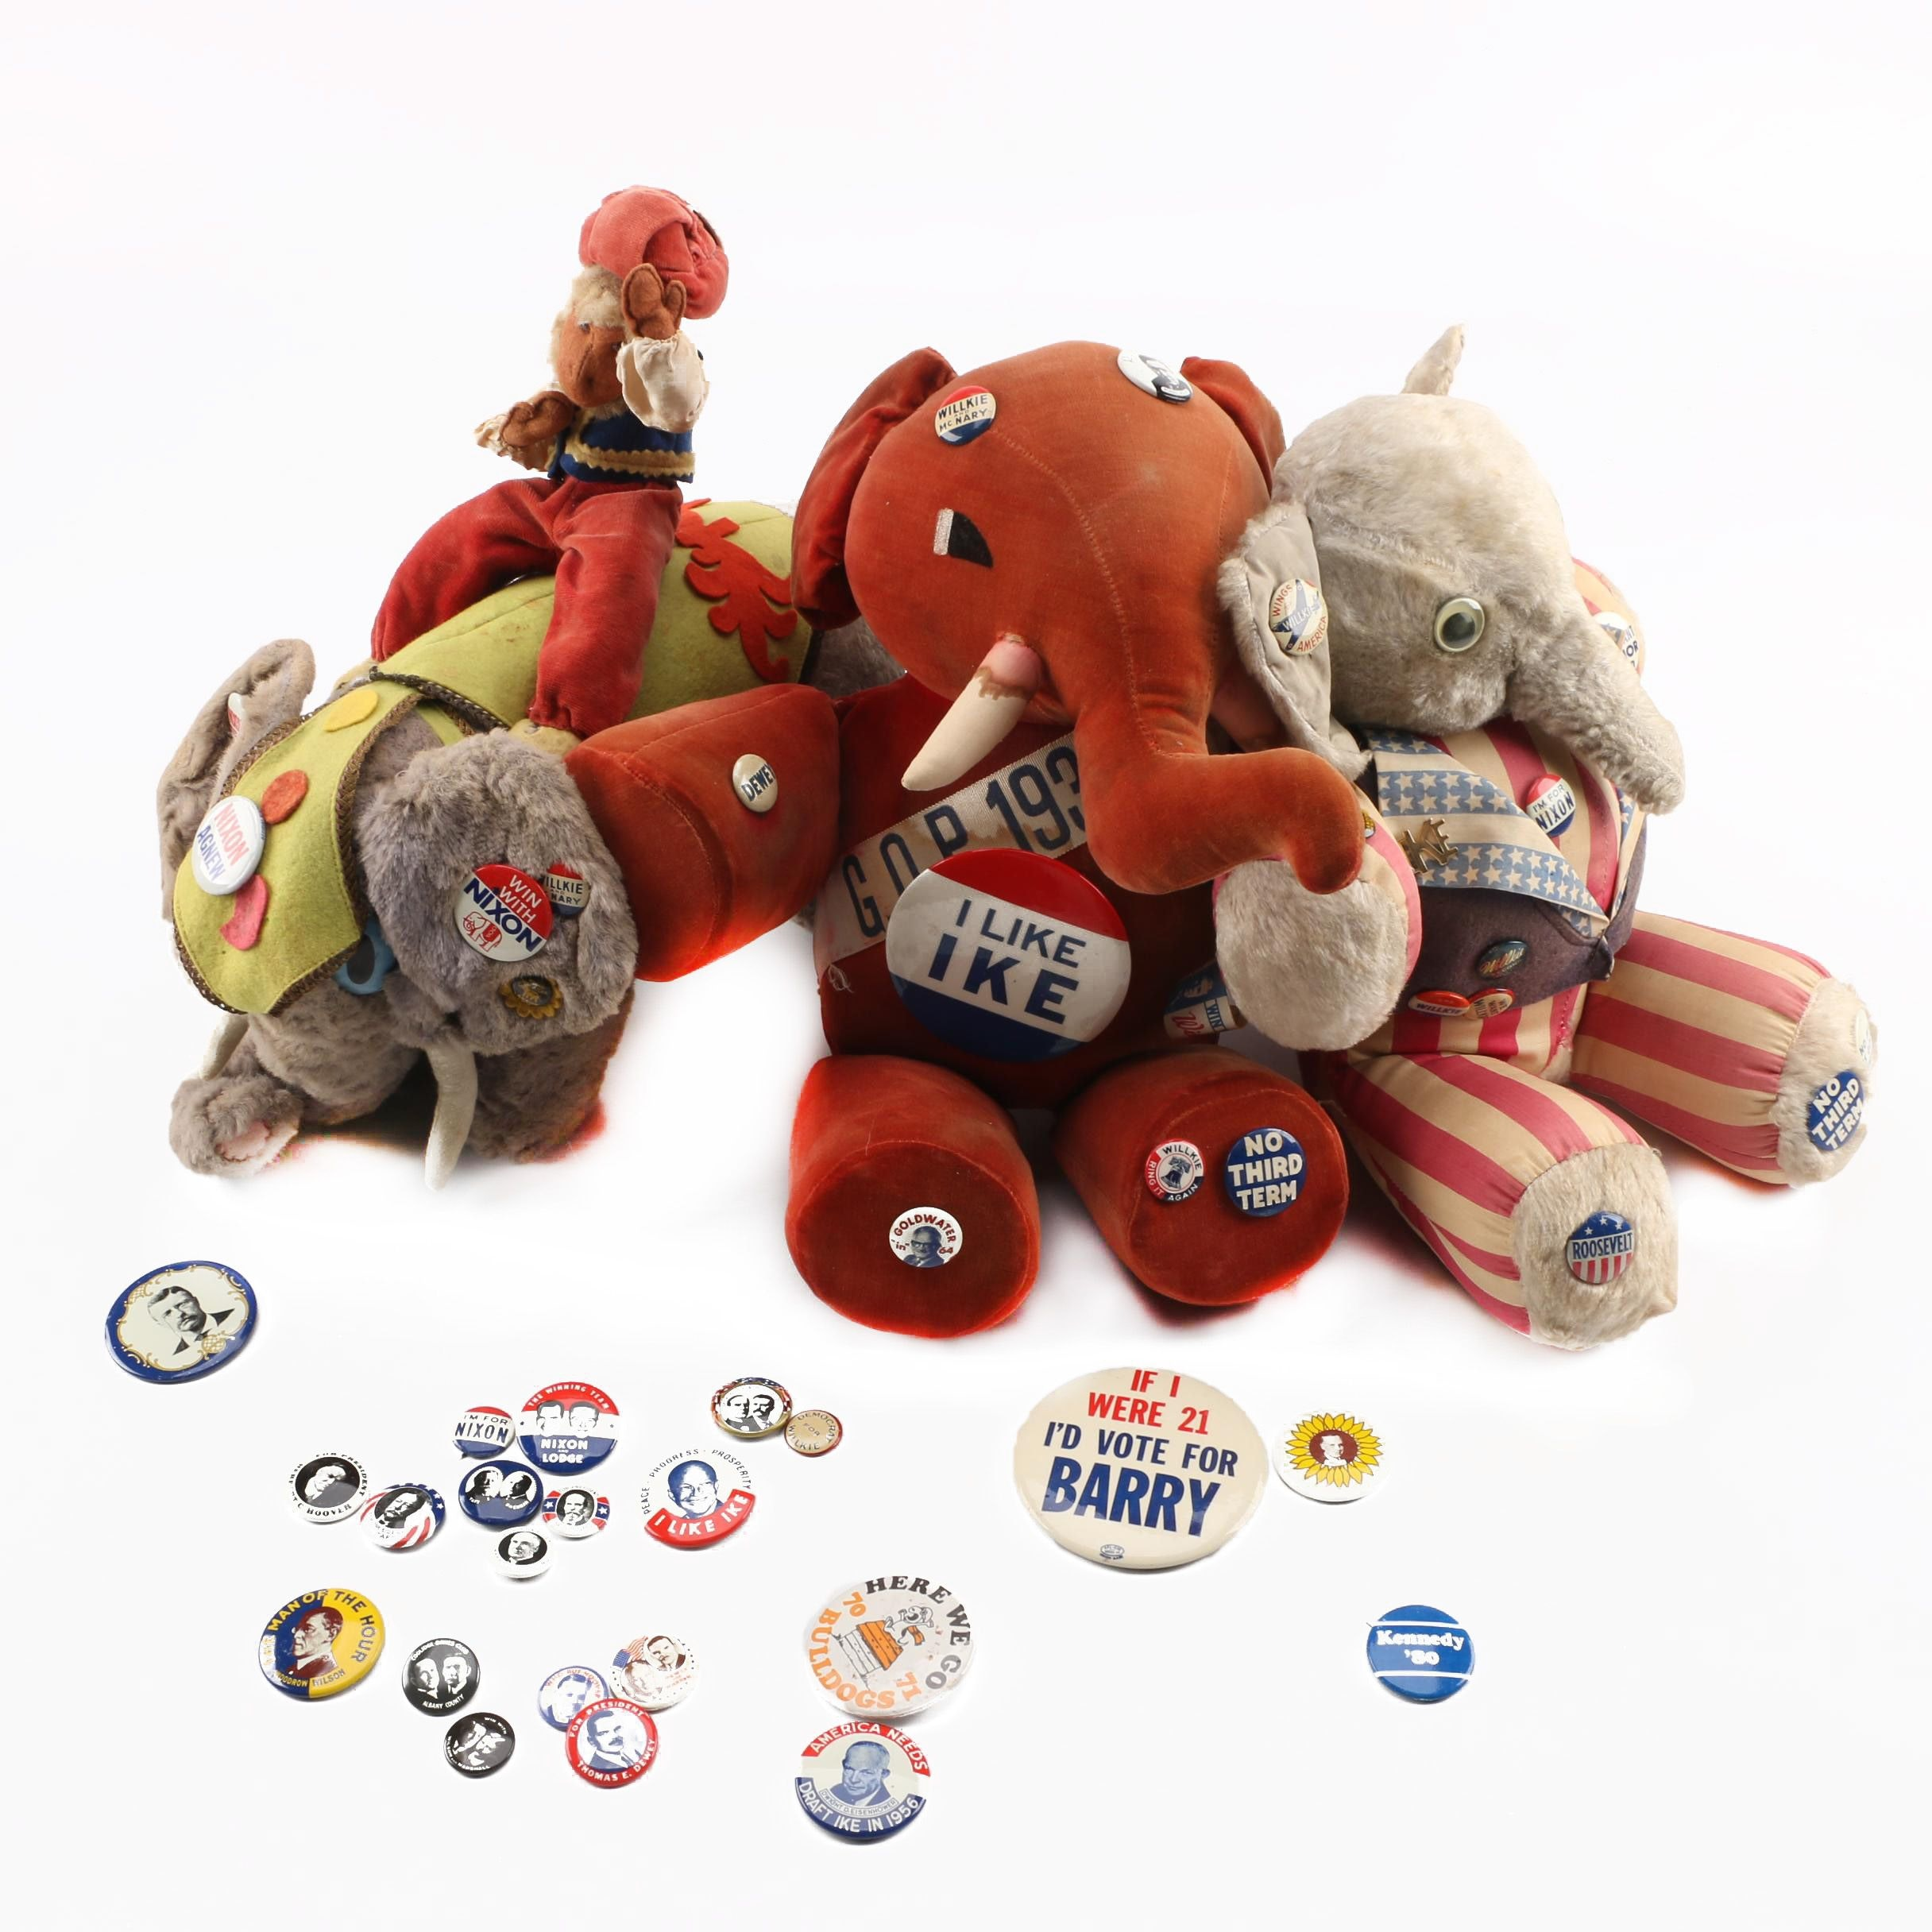 Vintage Stuffed Toys With Political Pinback Buttons